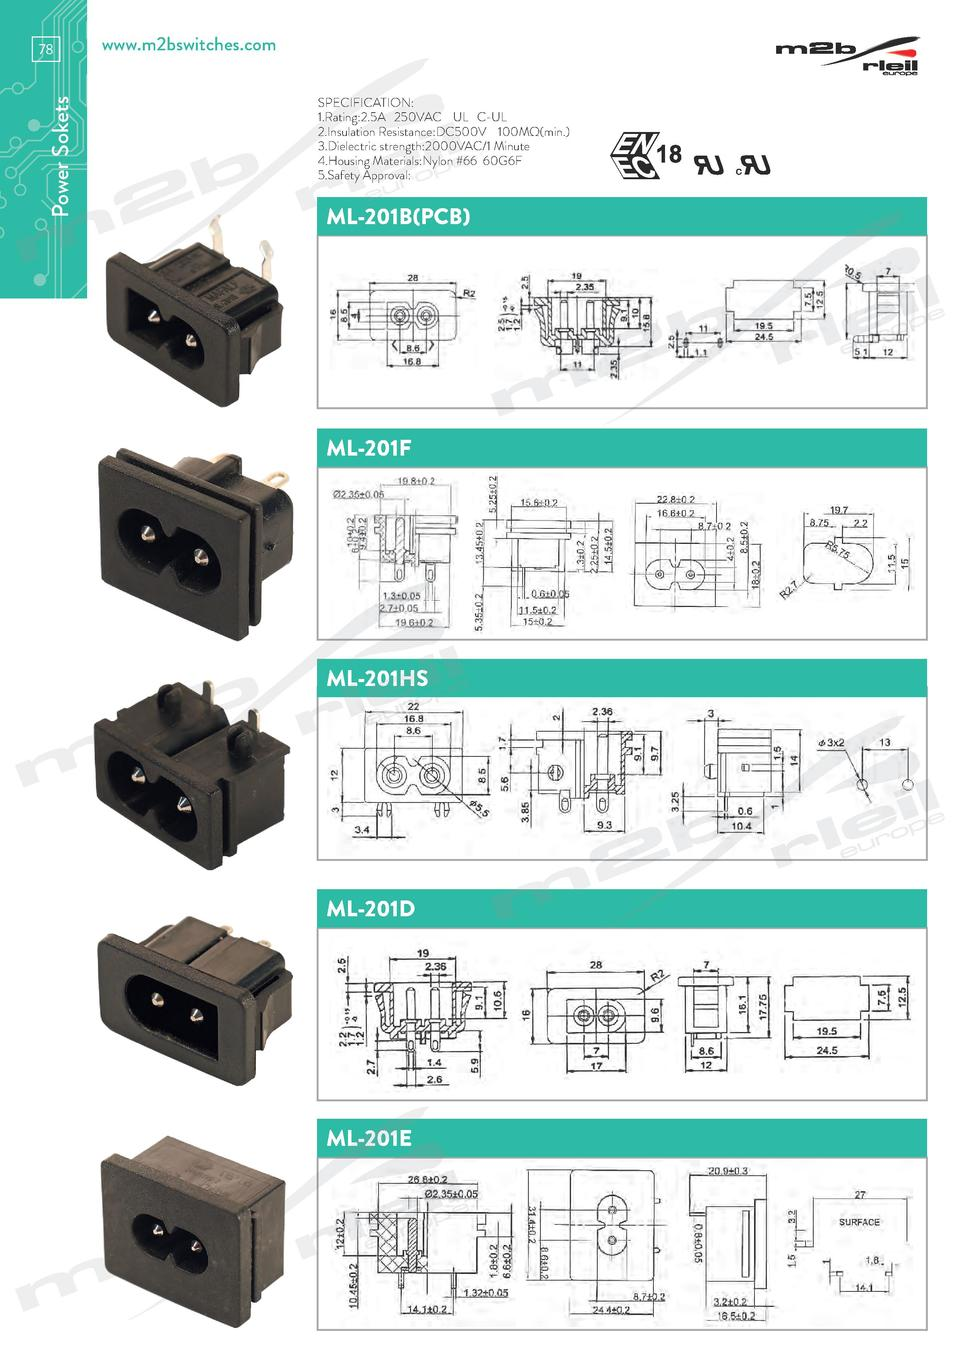 Power Sokets  78  www.m2bswitches.com SPECIFICATION  1.Rating 2.5A 250VAC UL C-UL 2.Insulation Resistance DC500V 100M   mi...